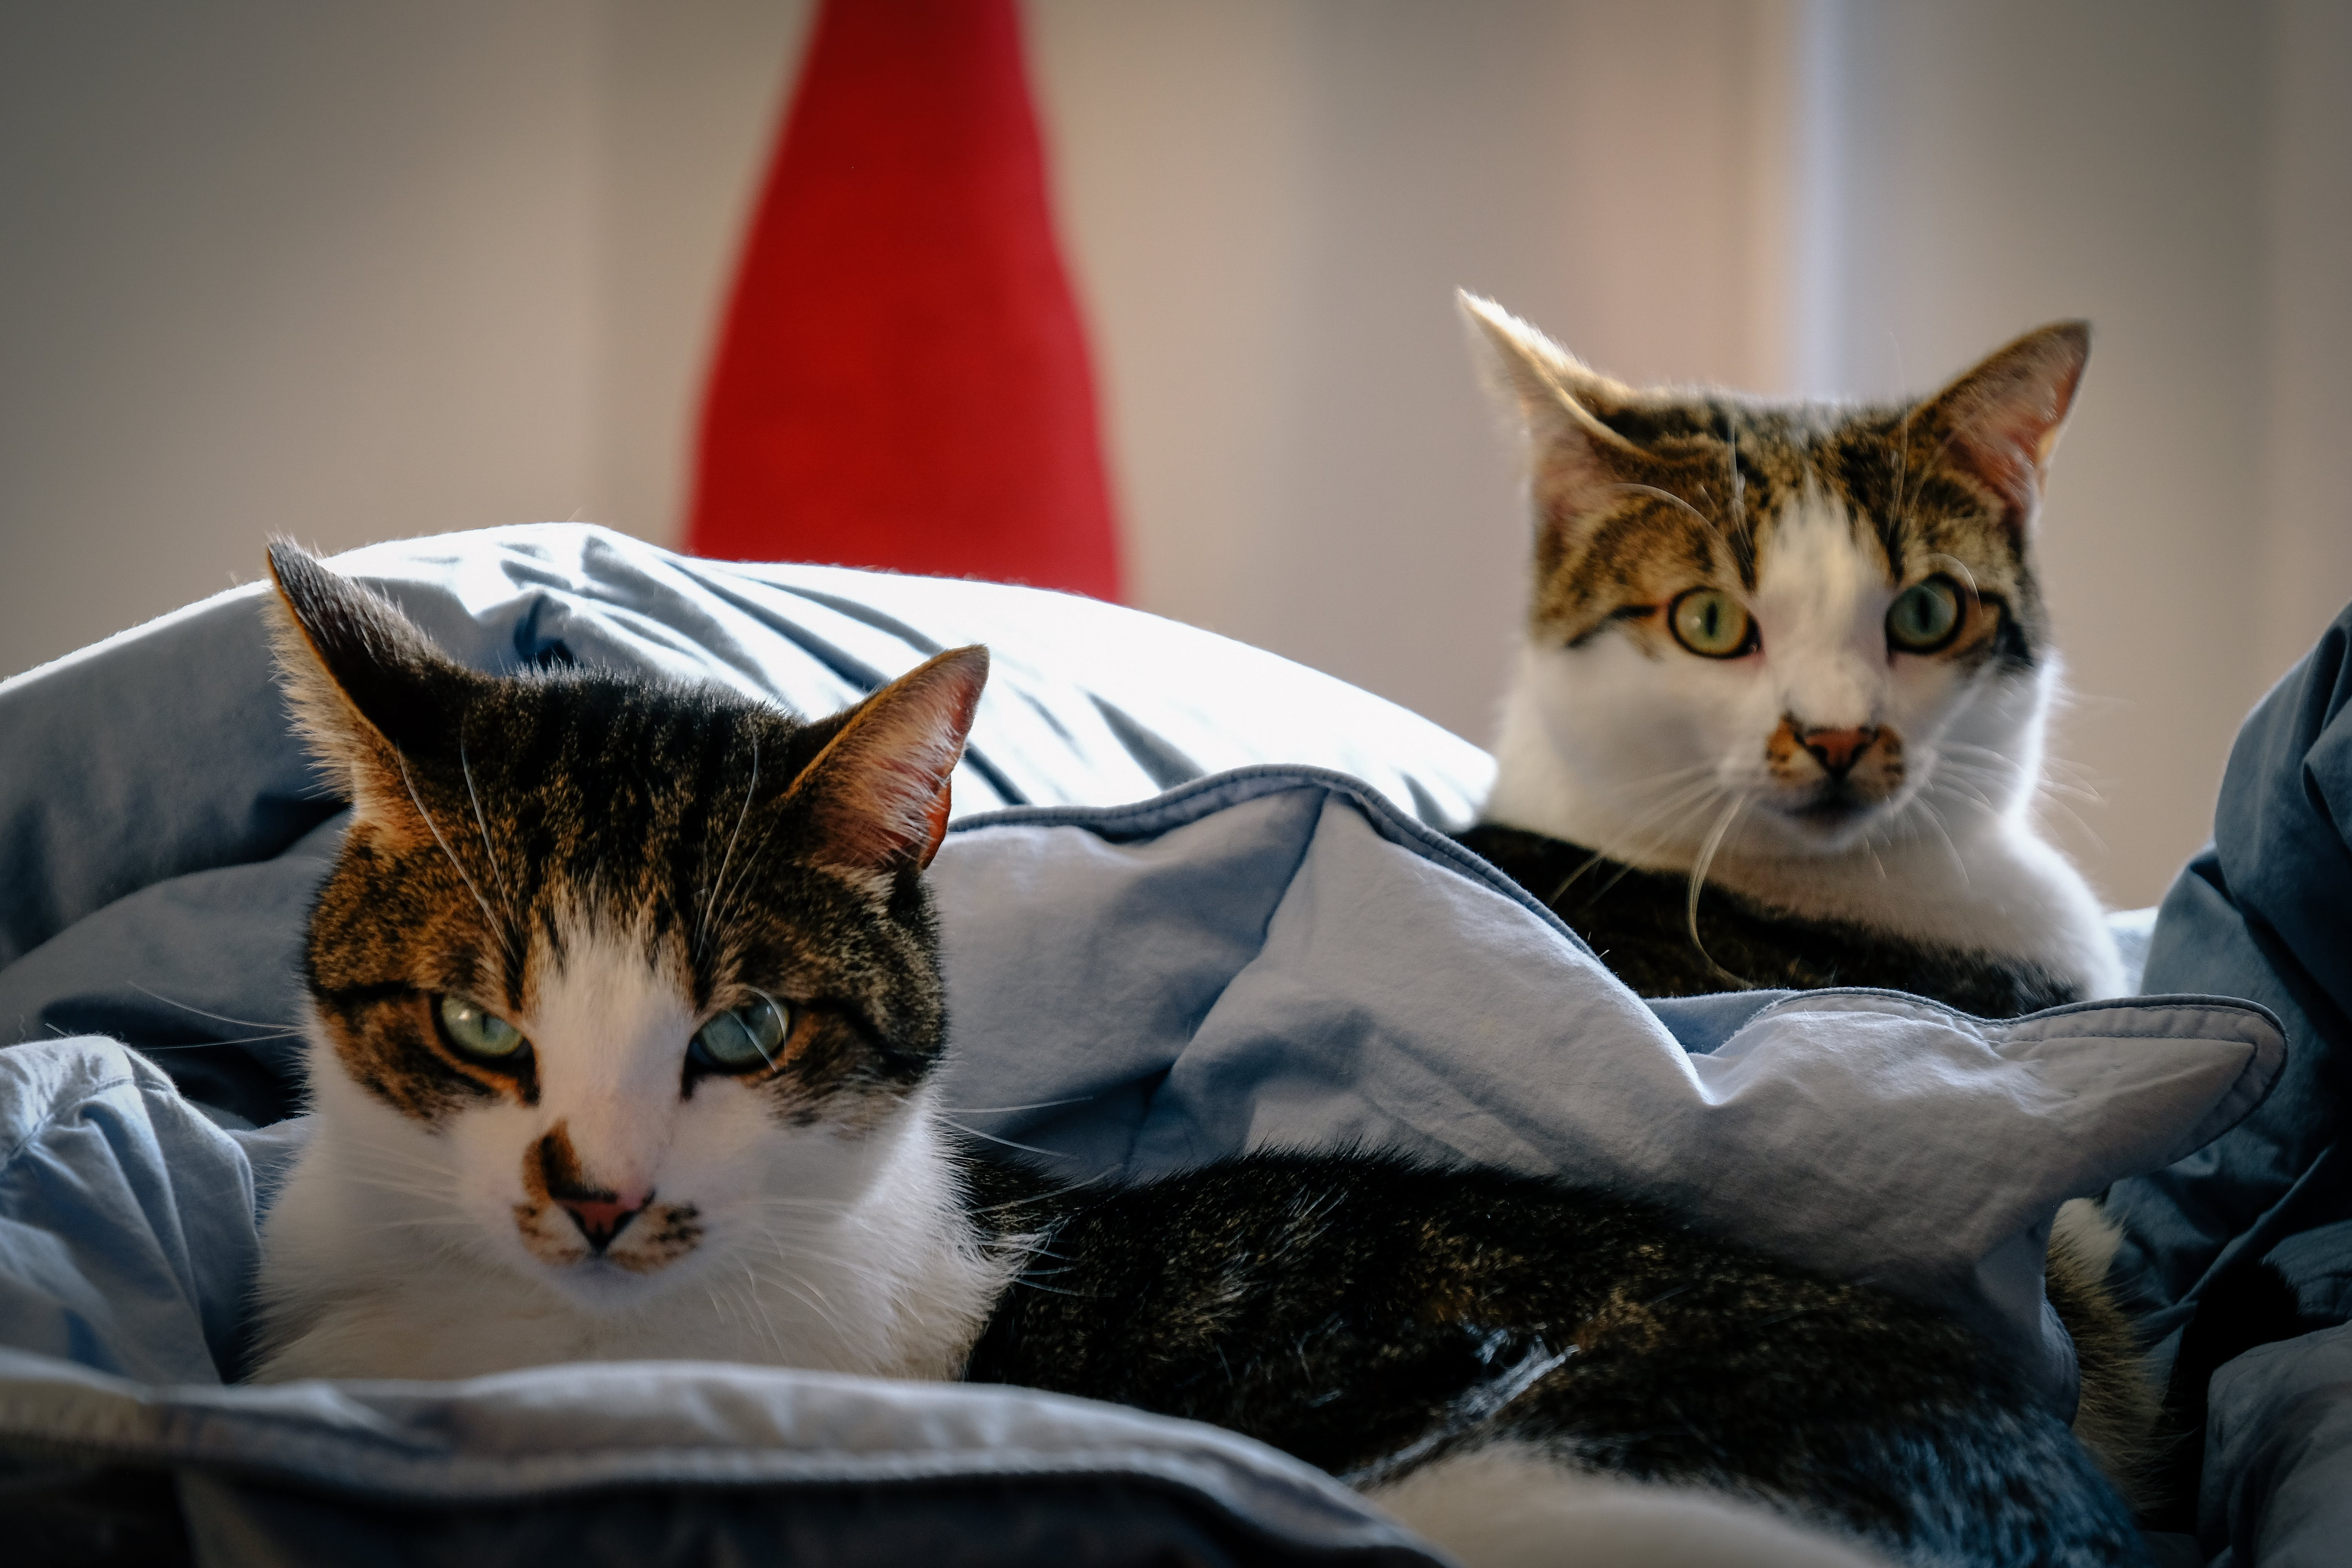 Focus Photography Of Two Cats